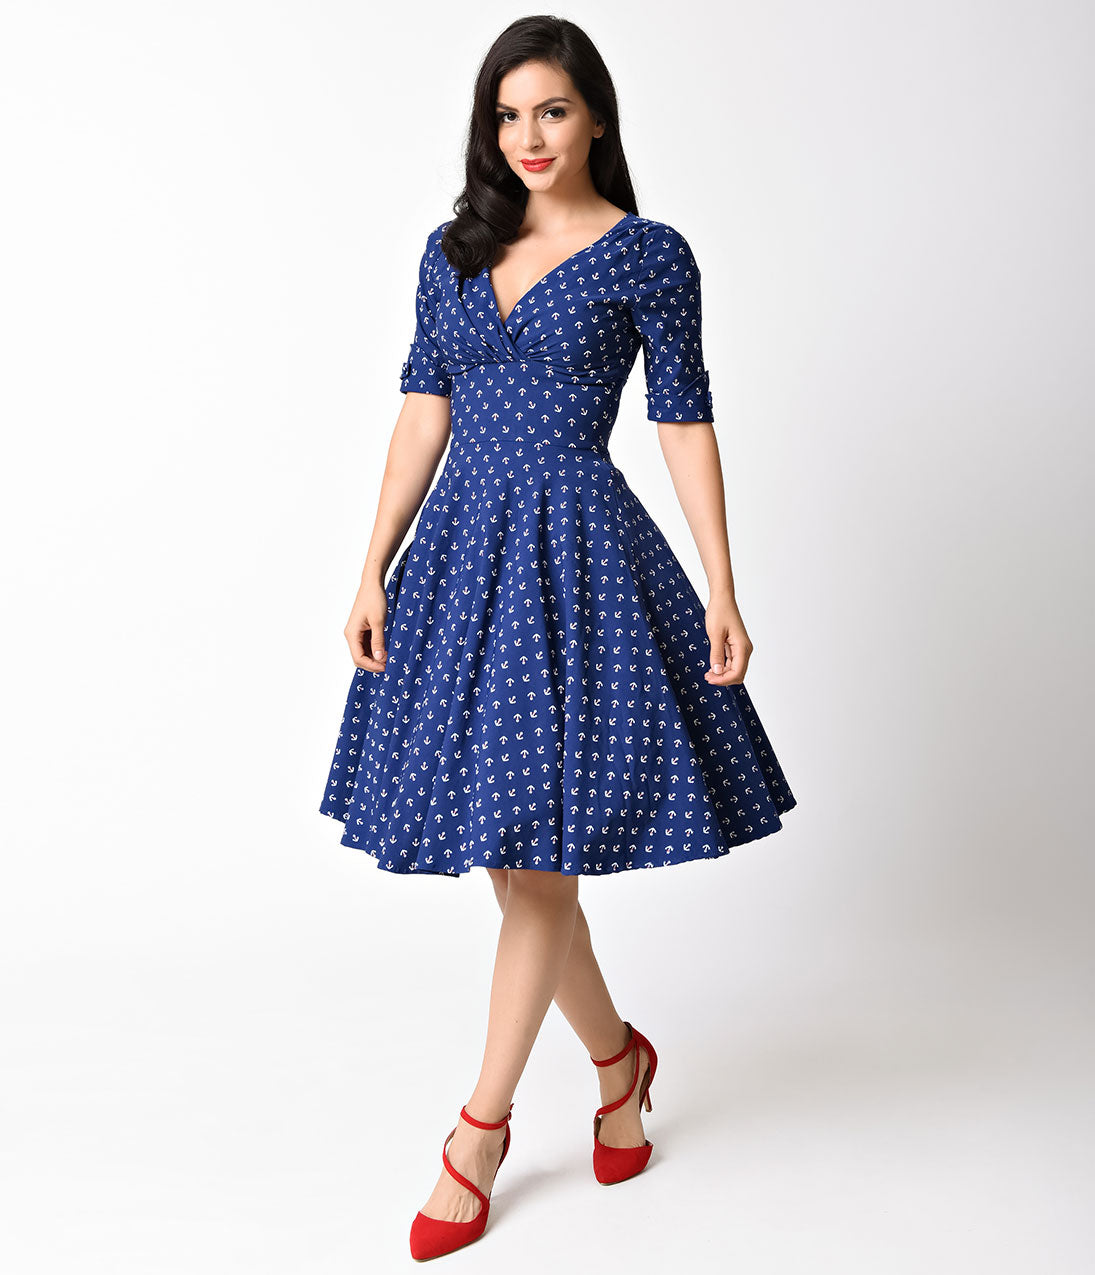 Vintage Polka Dot Dresses – 50s Spotty and Ditsy Prints Unique Vintage 1950s Navy Anchor Print Delores Swing Dress with Sleeves $66.00 AT vintagedancer.com